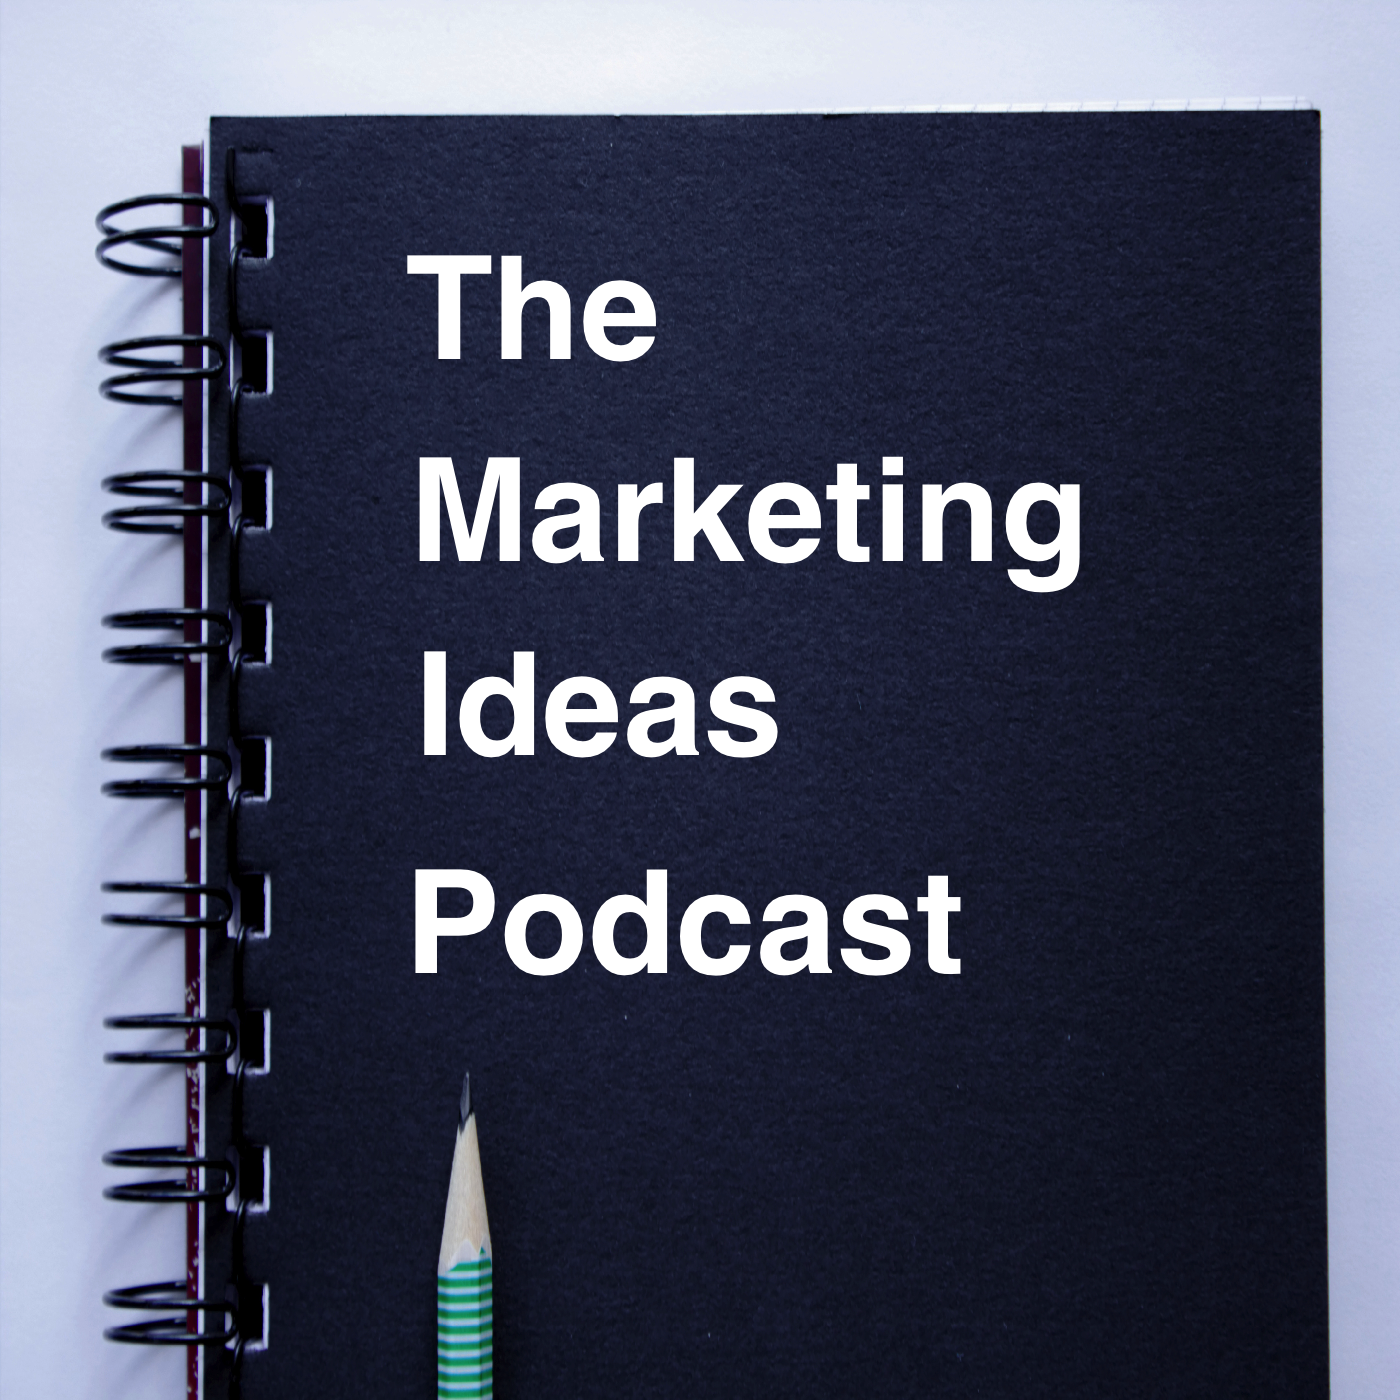 The Marketing Ideas Podcast